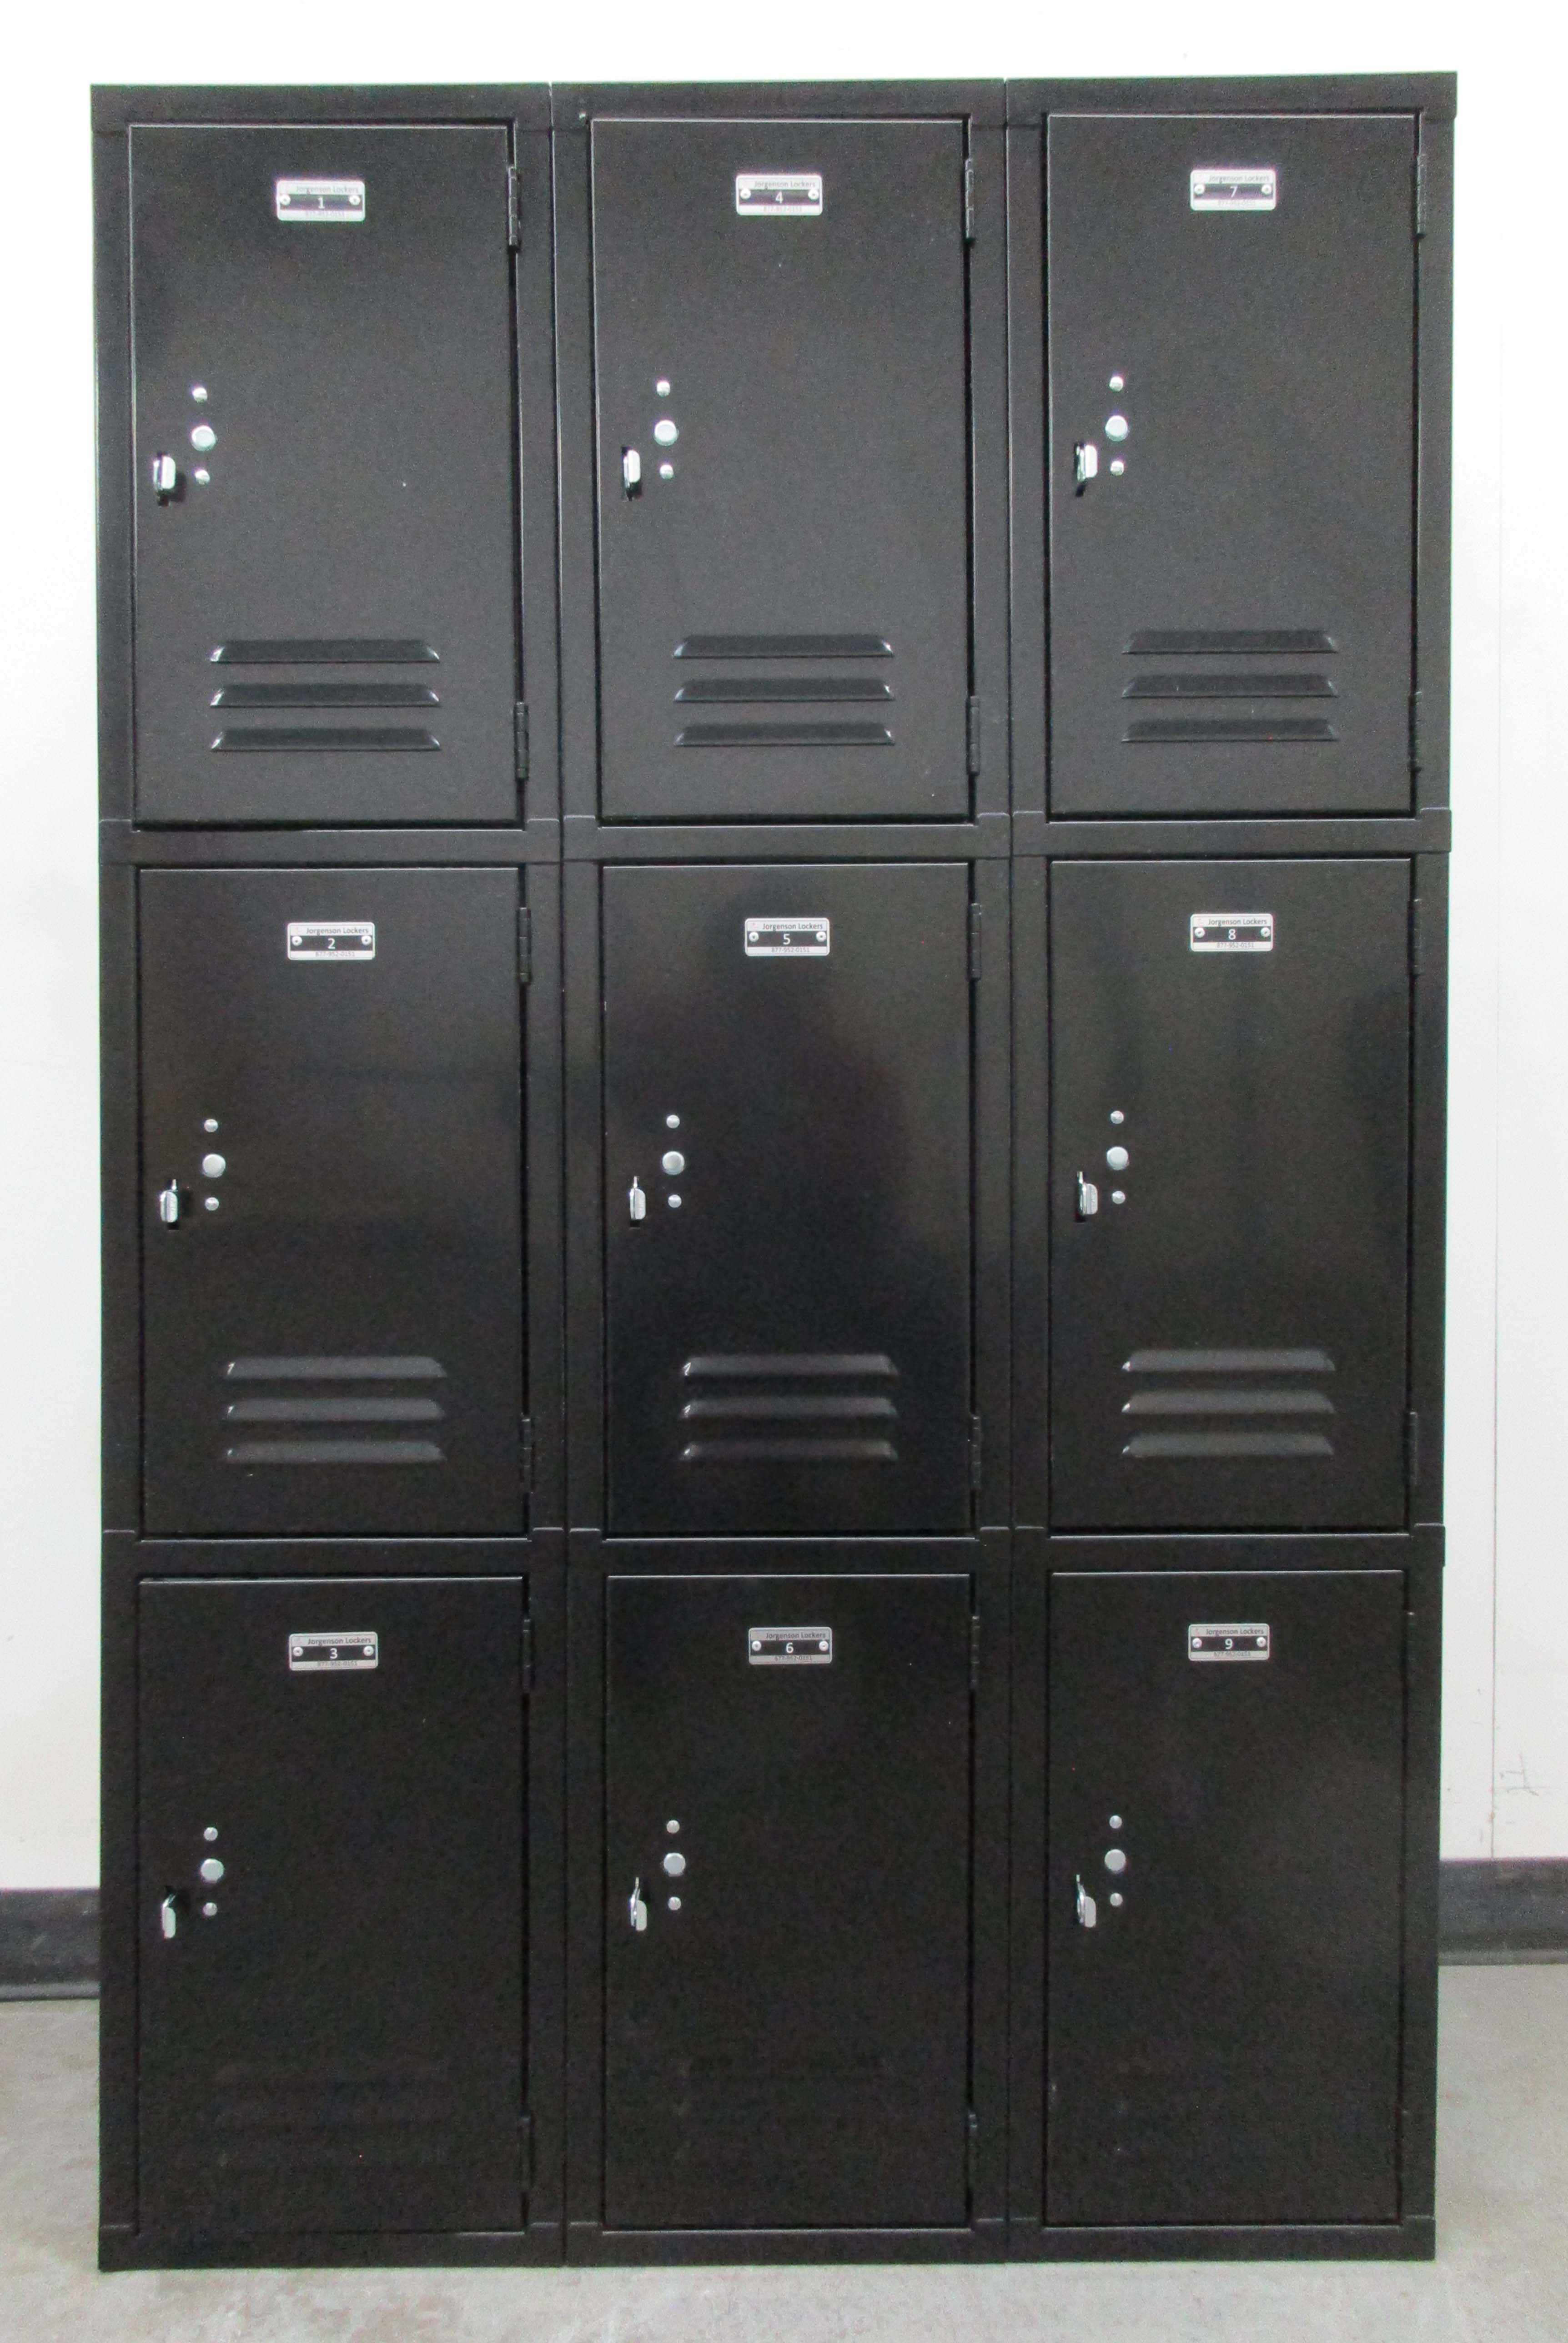 Black Triple Tier Storage Lockersimage 2 image 2